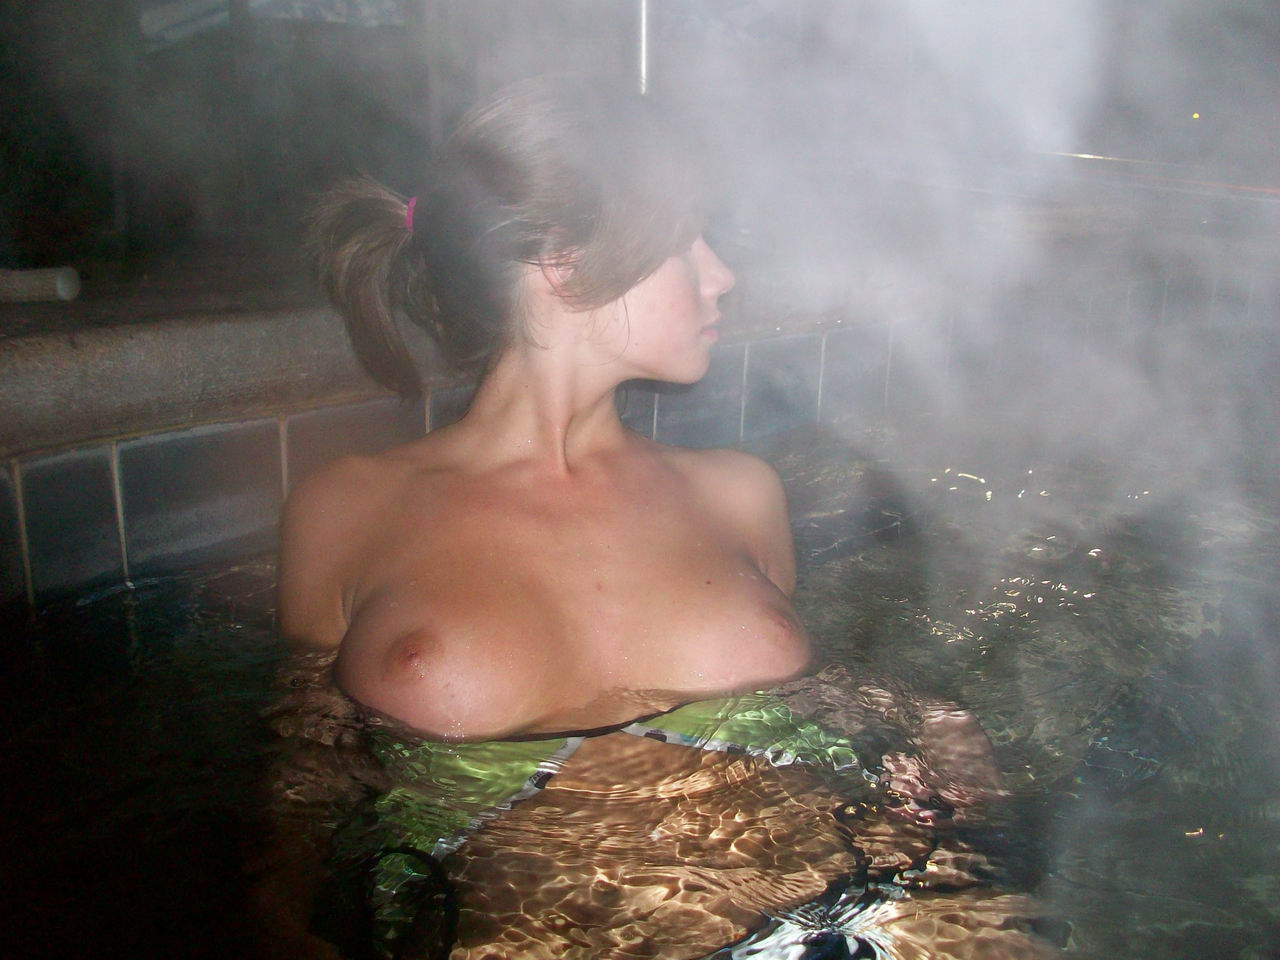 Awesome Yacht Hot Tub Naked Party Girls In Missouri Mobile Porn Vedio